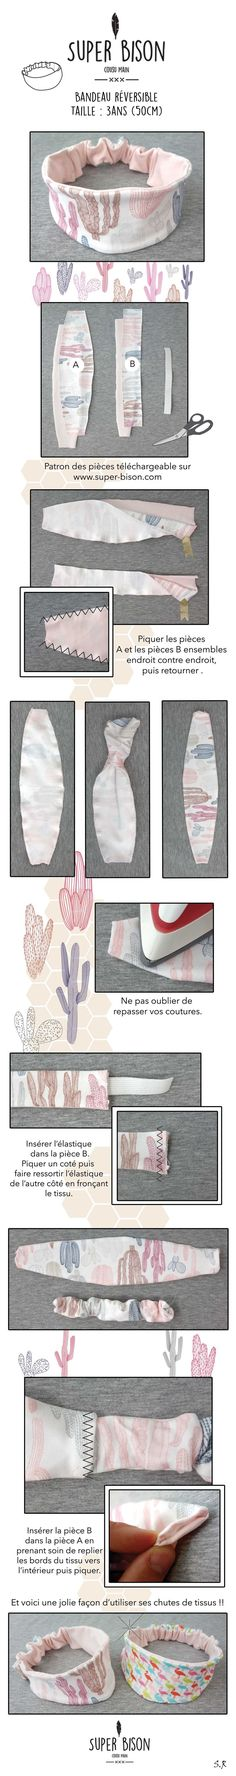 A very simple tutorial to realize by using the falls of fabrics for the ch ...  #fabrics #falls #realize #simple #tutorial #using Bandeau Cheveux Enfant, Bandeau Fillette, Coudre Des Bandeaux, Vêtements Bandeaux, Couture Vetement Enfant, Couture Pour Bébé, Petite Couture, Couture Enfant, Coudre Robe